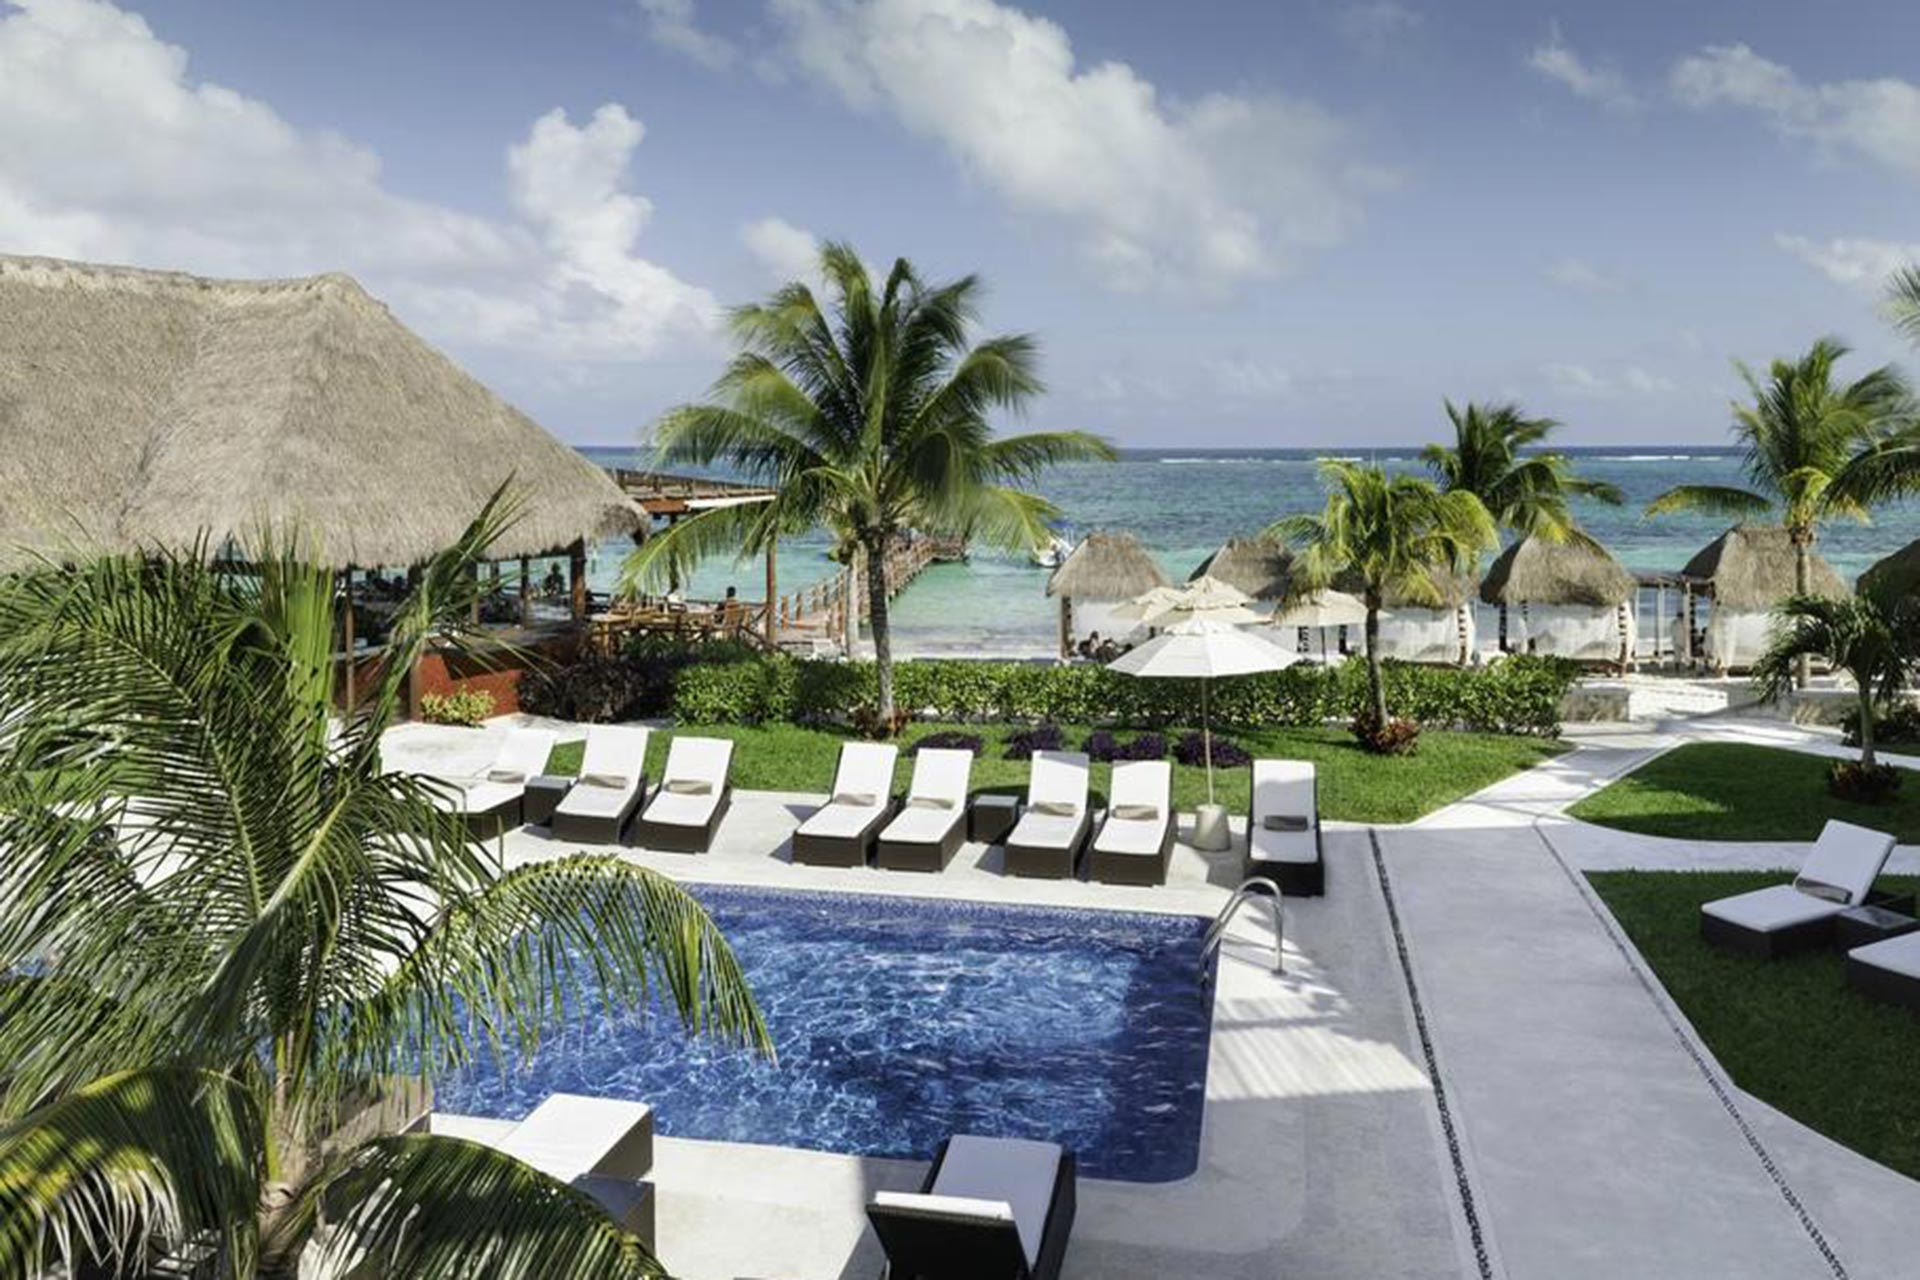 AZUL Beach Resort - Riviera Maya, Mexico - All Inclusive Resort